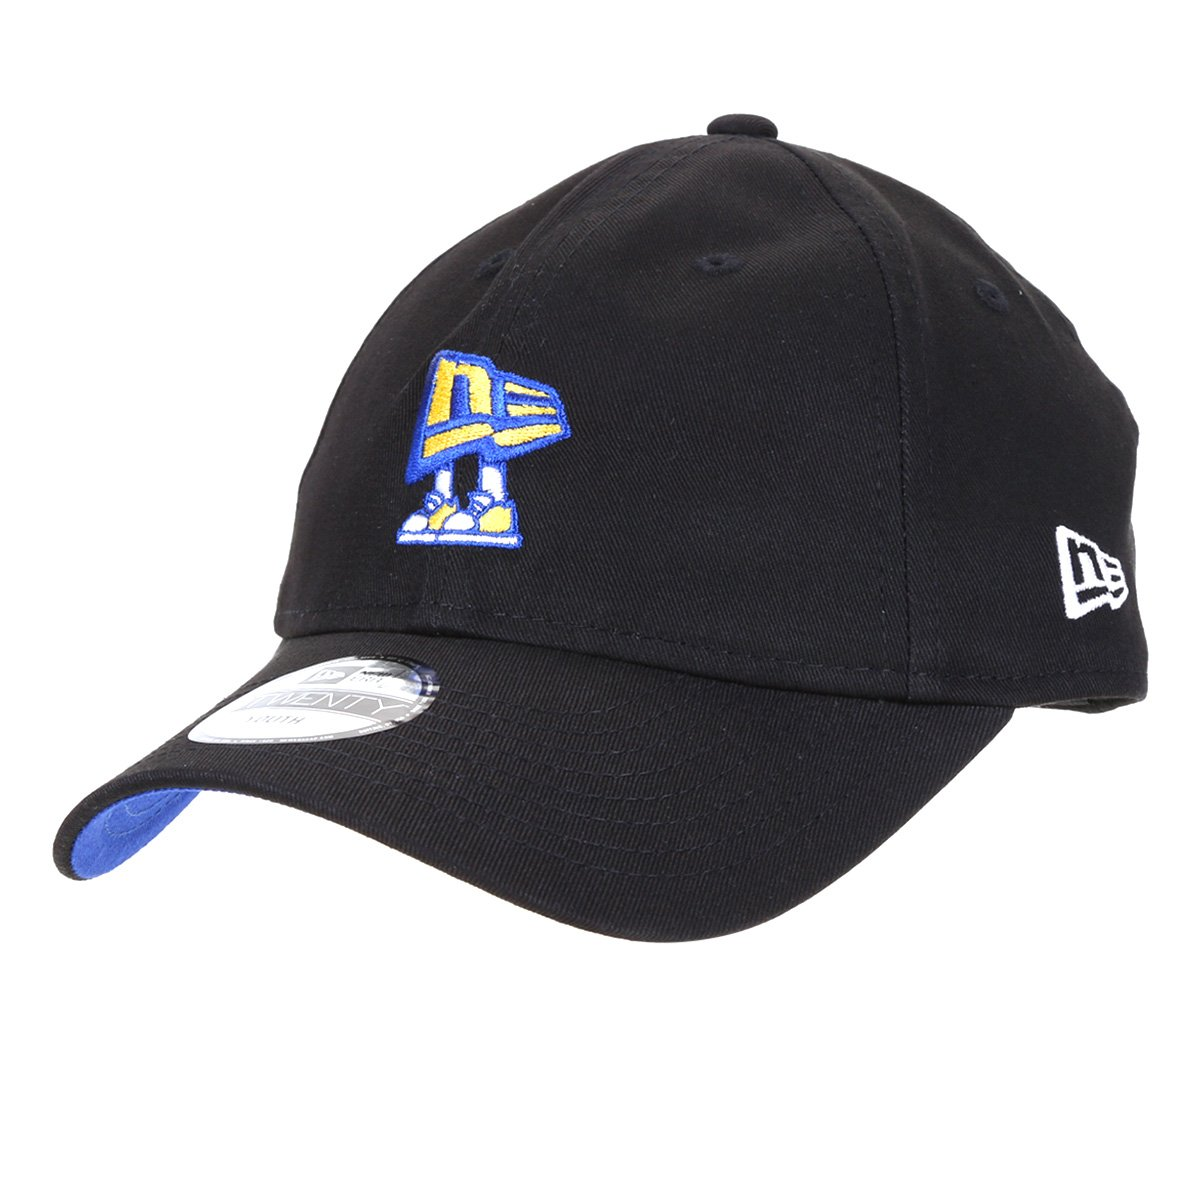 Boné Infantil New Era Aba Curva Strapback 920 St Youth Core Flag Alive Blk